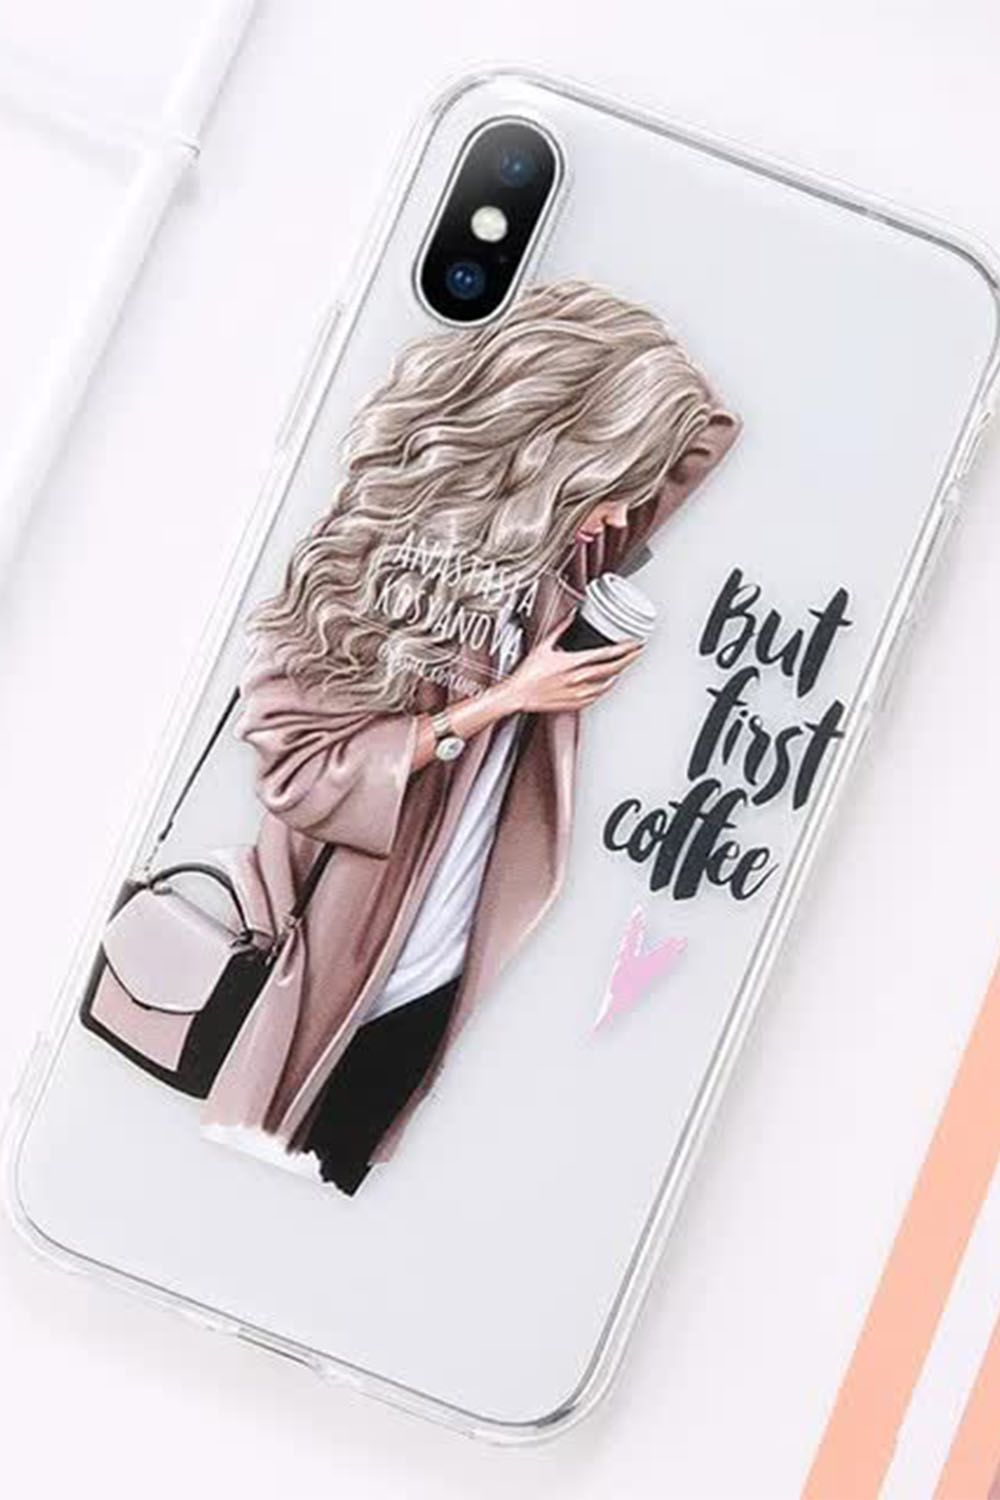 Beautiful Girl Pattern Case For Iphone 6s 6 7 8 Plus 11 Pro Max Transparent Soft Phone Cover For Iphone 11 X Xr Xs Iphone Cases Bff Phone Cases Iphone 6s Case